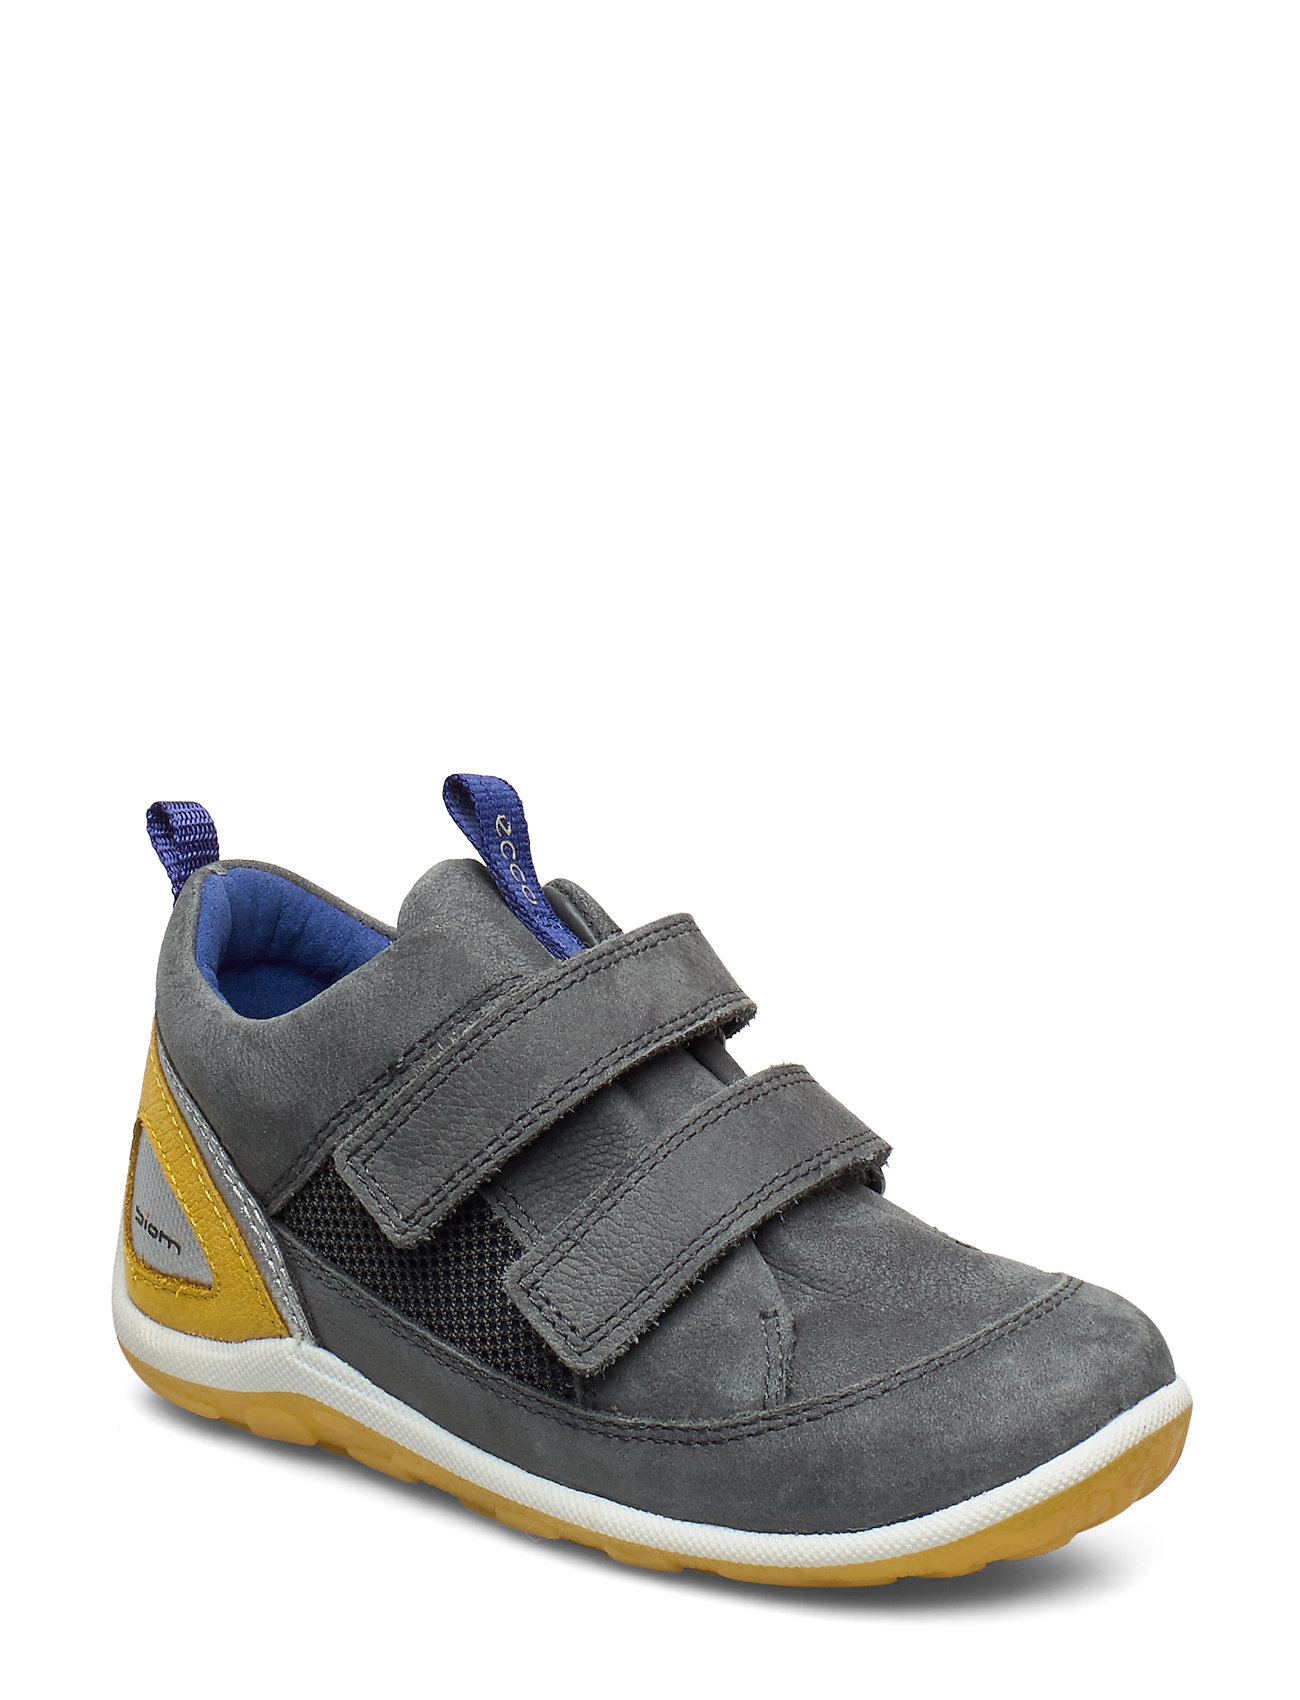 Image of Biom Mini Shoe Shoes Pre Walkers Beginner Shoes 18-25 Blå ECCO (3307689717)